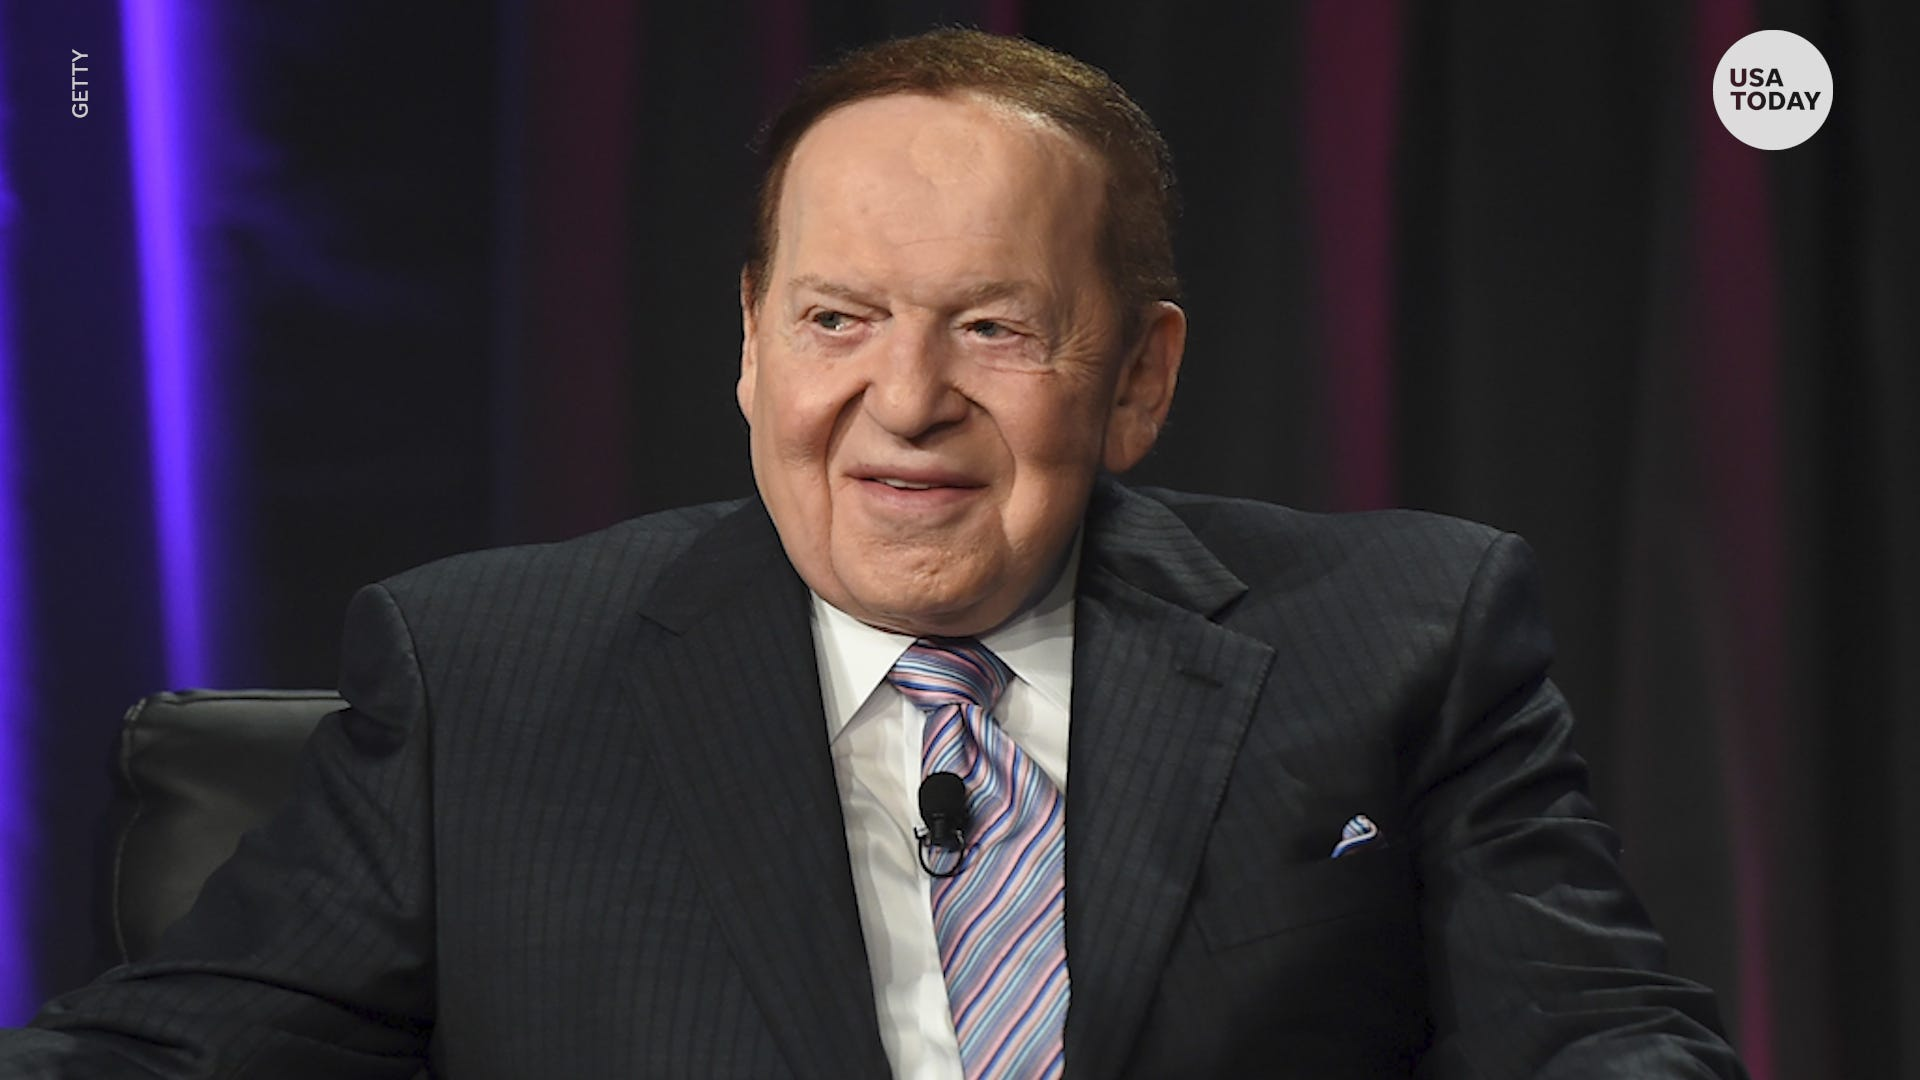 Sheldon Adelson, a casino mogul and major GOP donor, has died at the age of 87